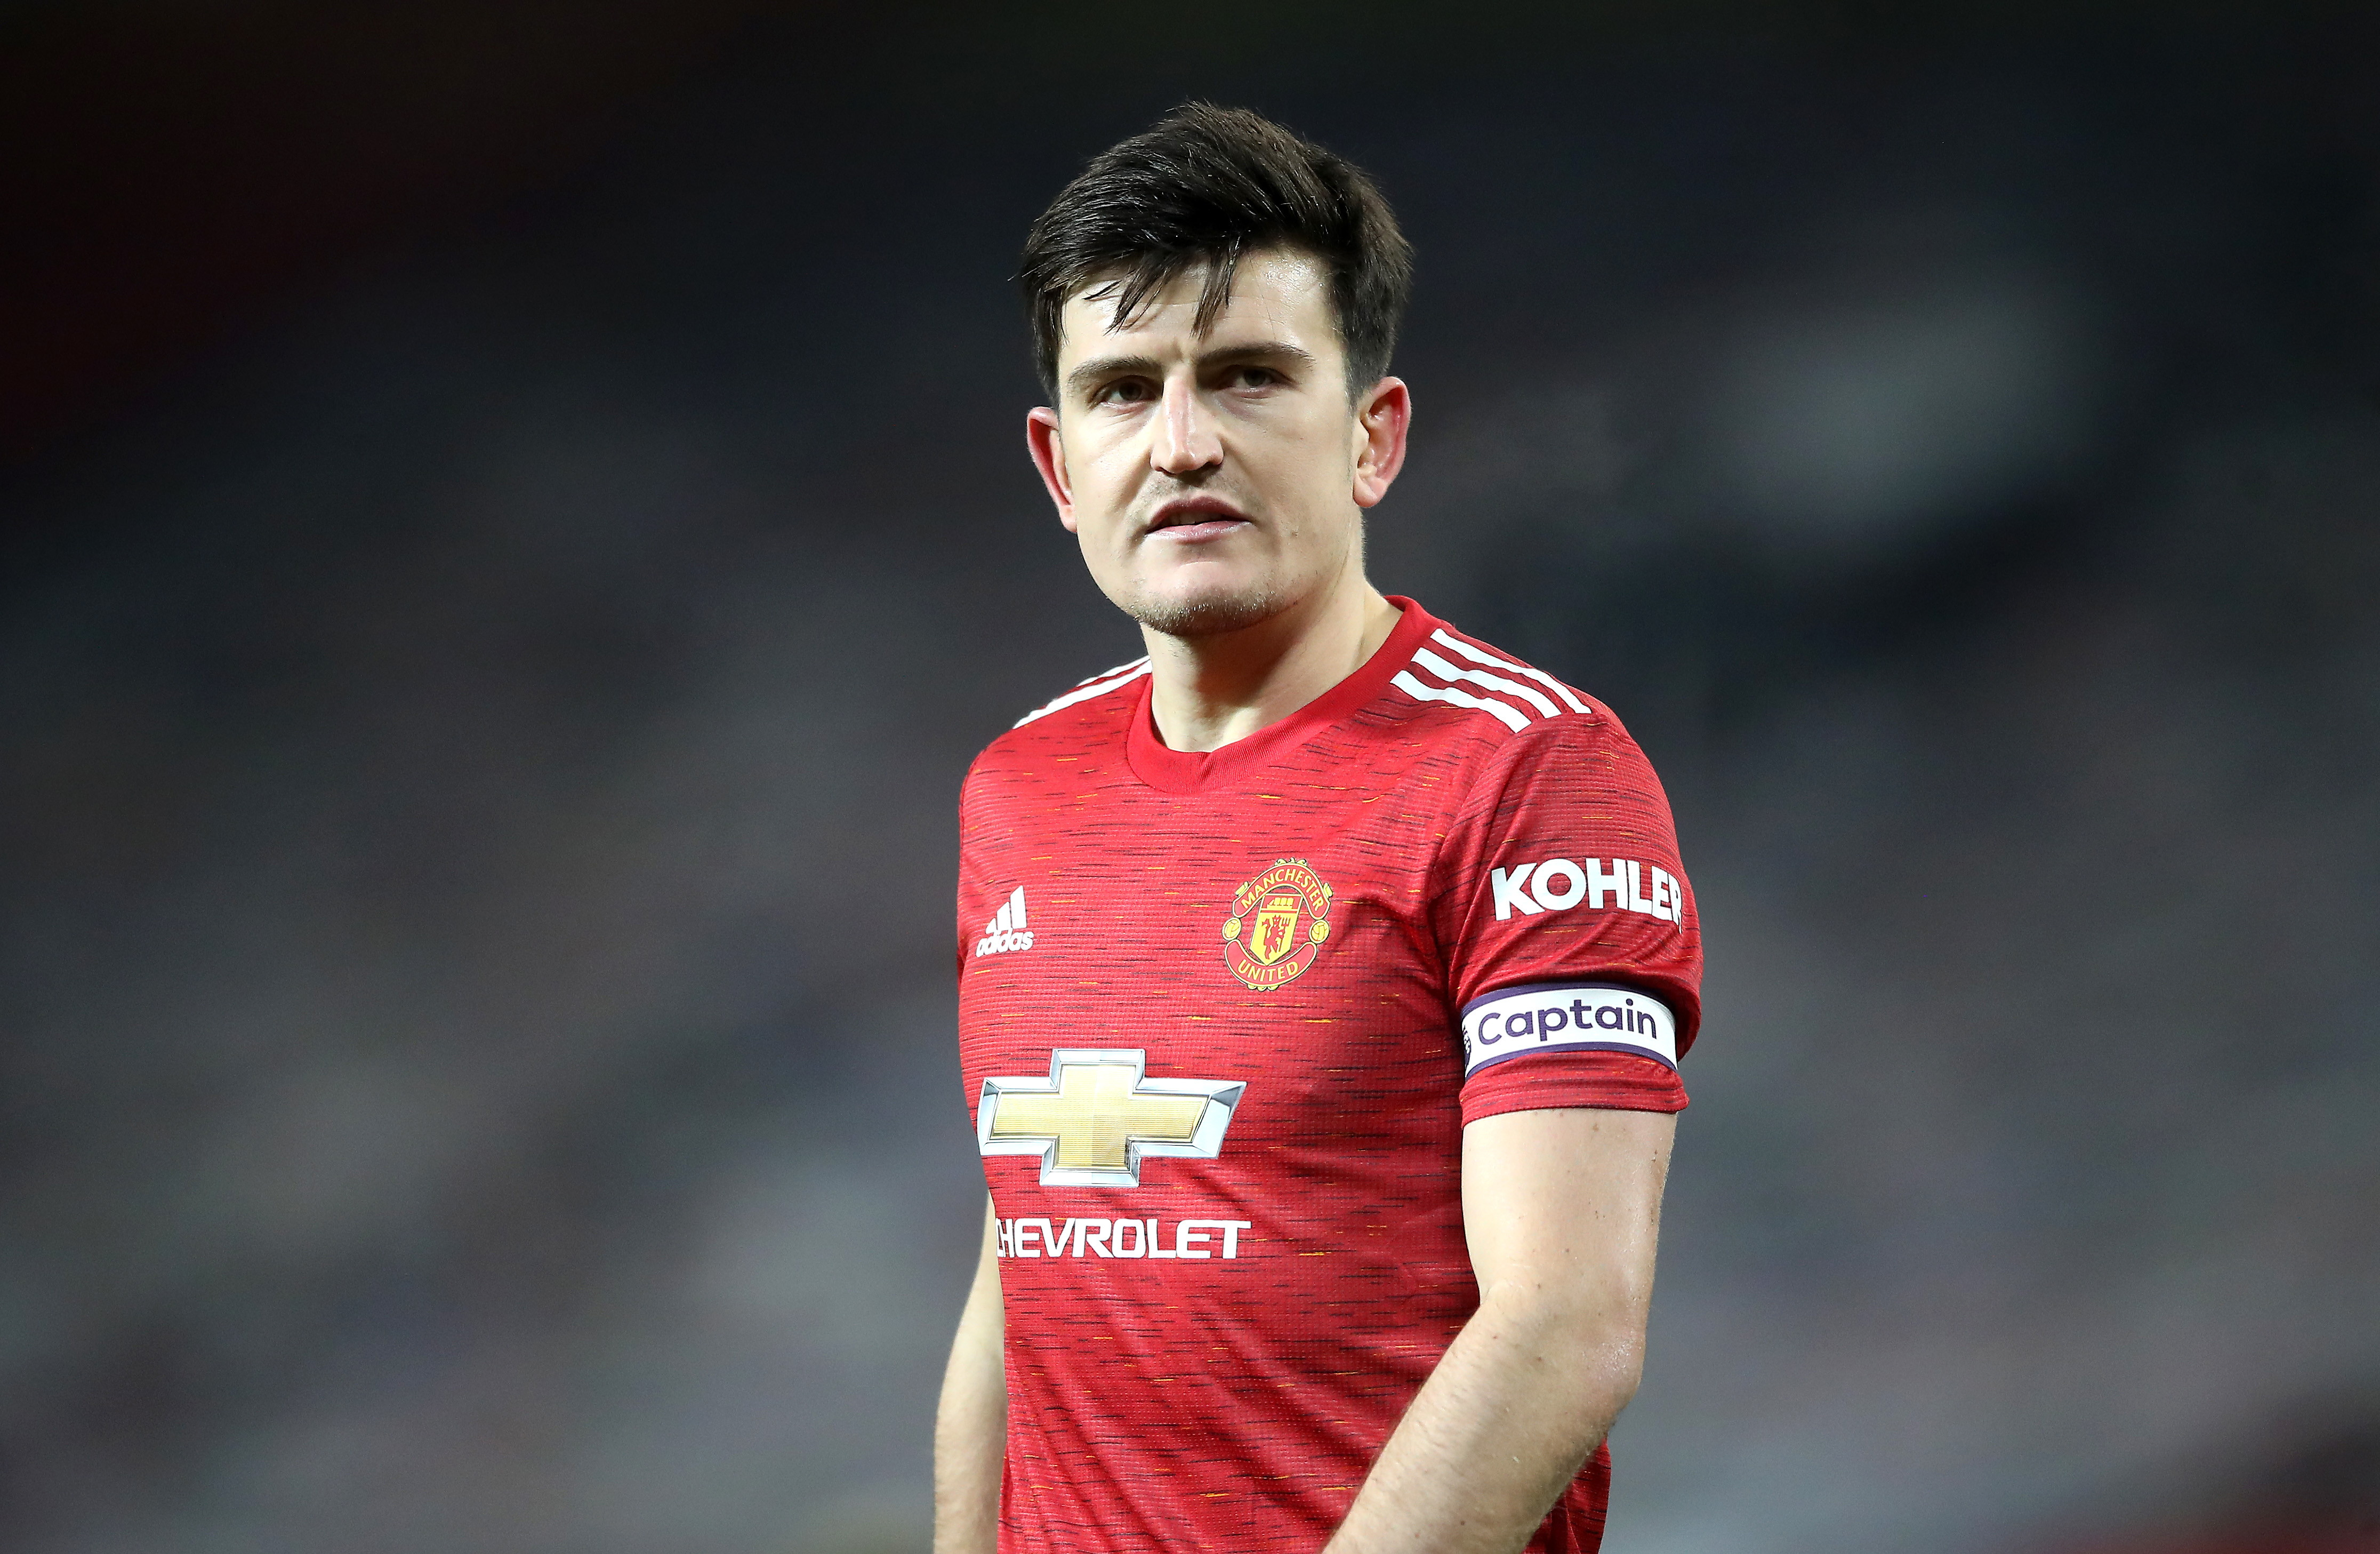 1) Maguire - Manchester United: 4745'